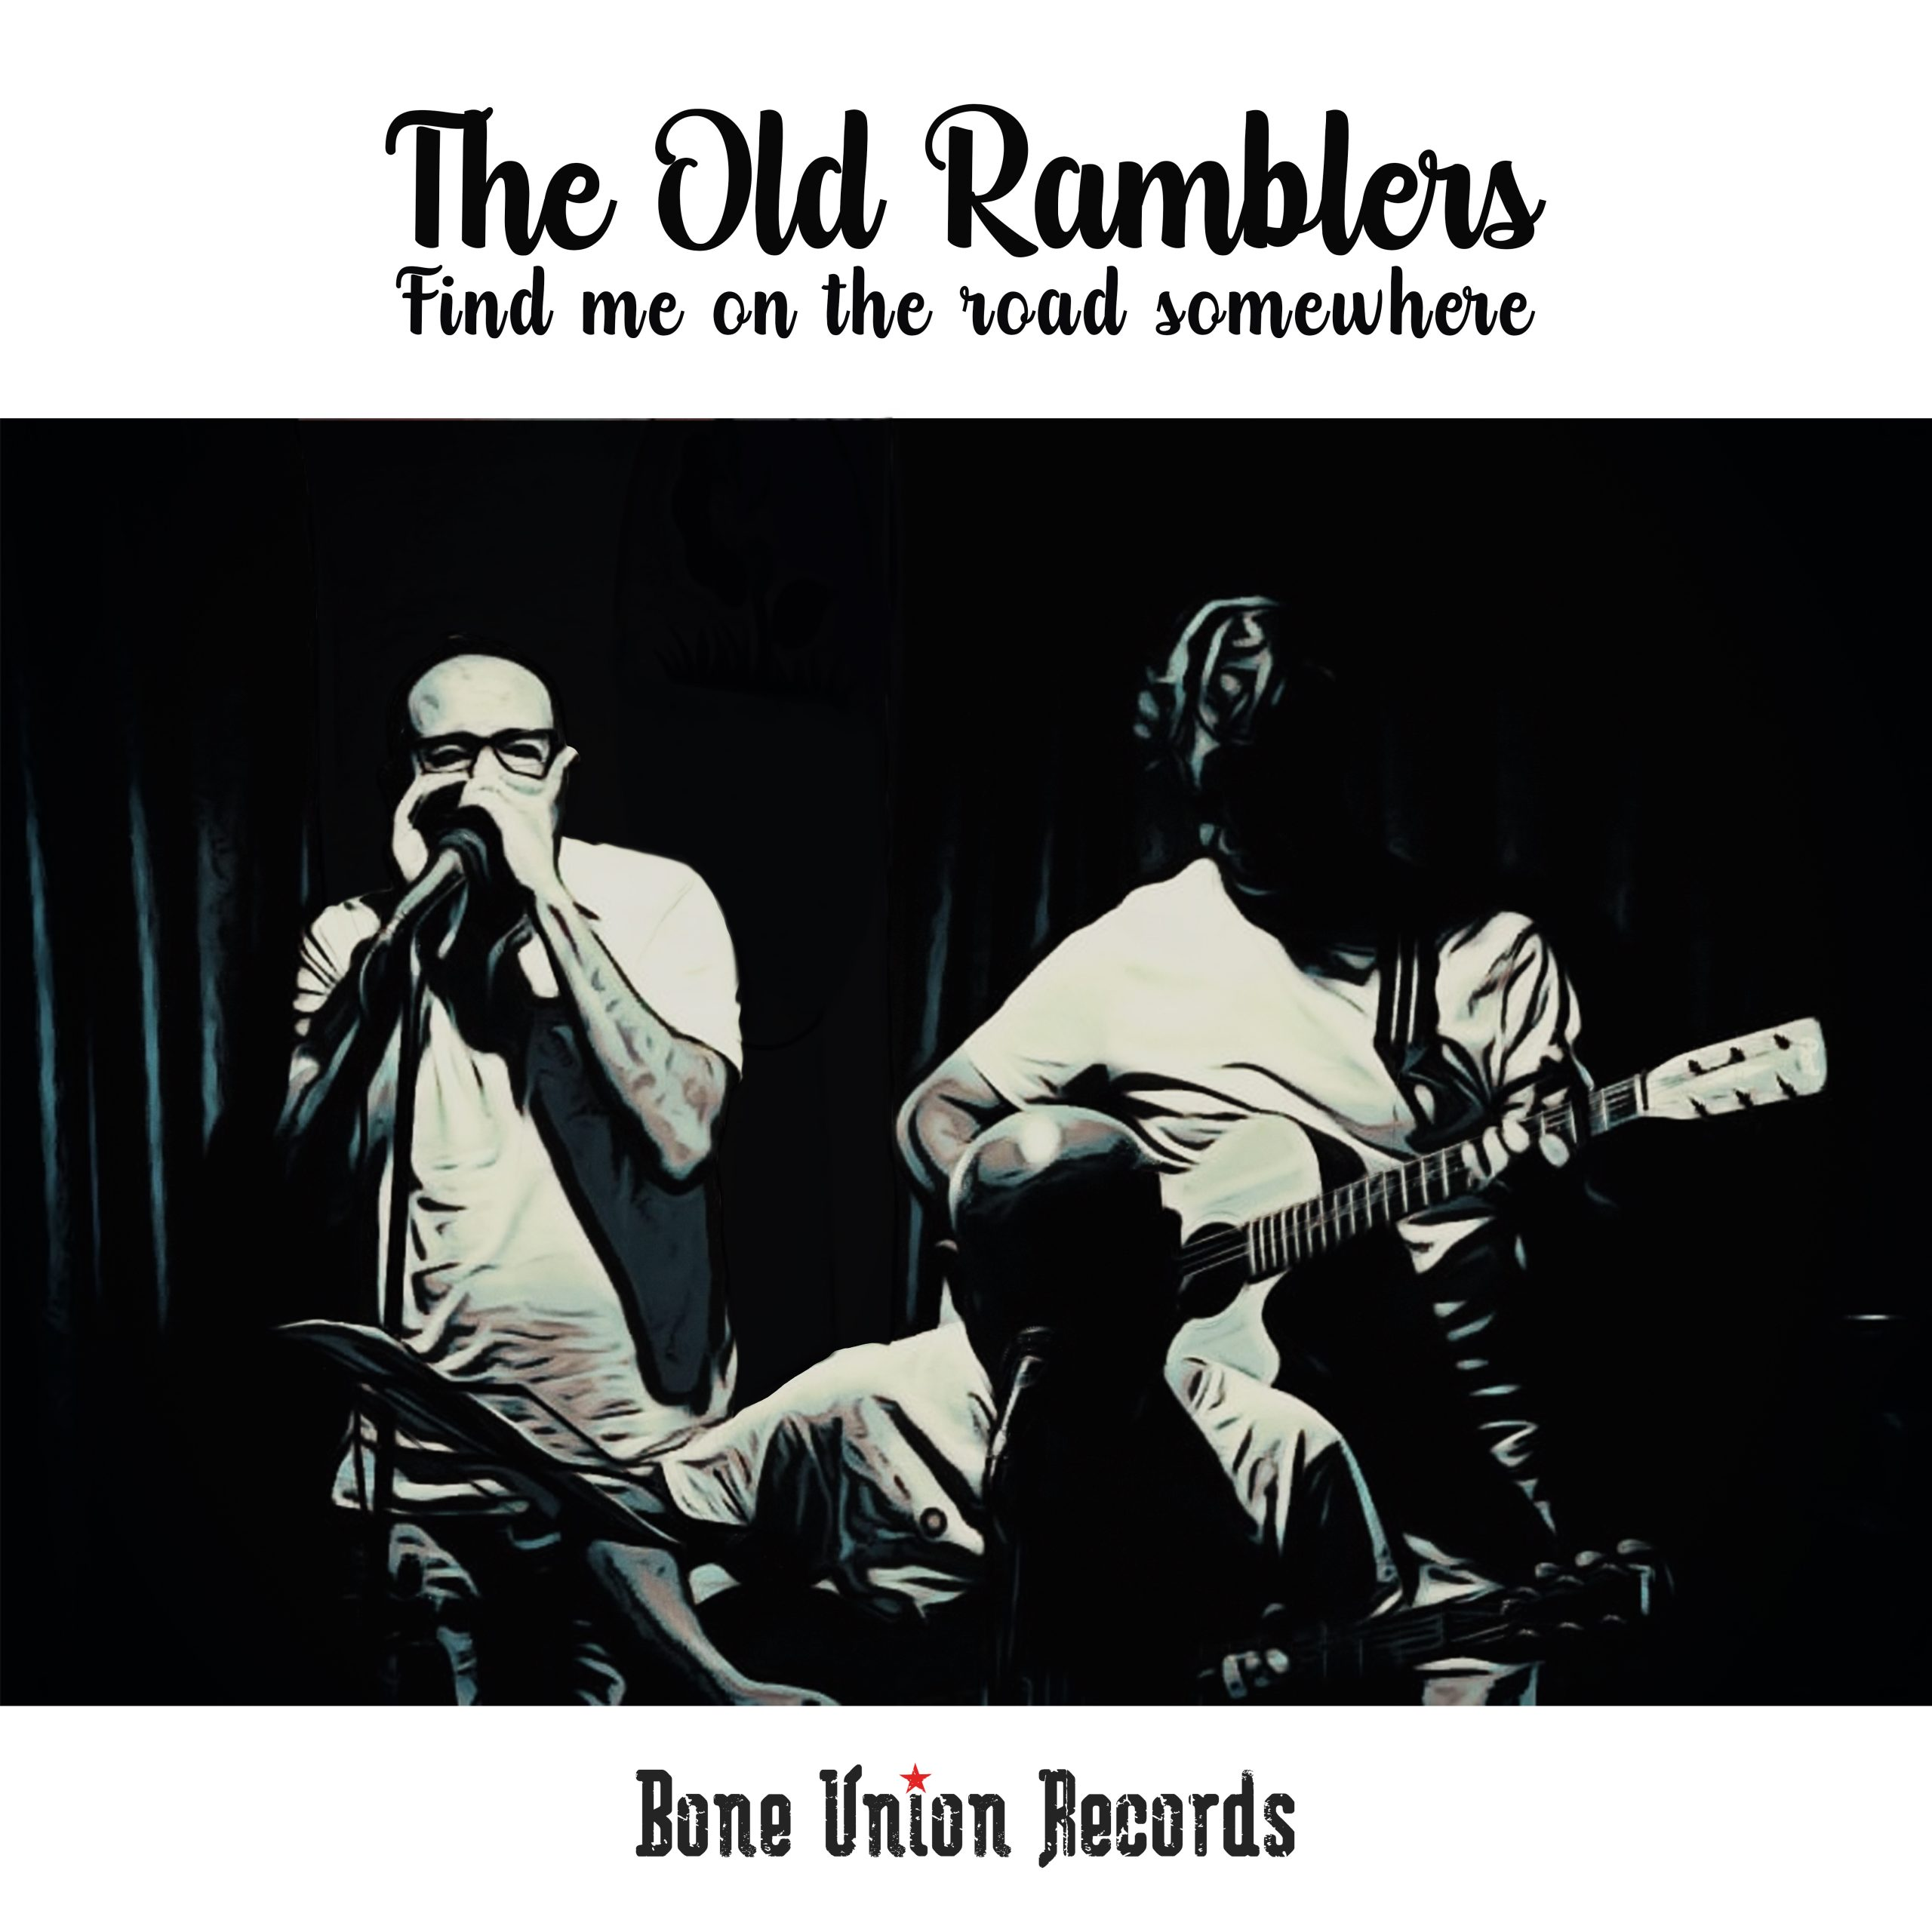 Old Ramblers say Find Me On The Road Sometime